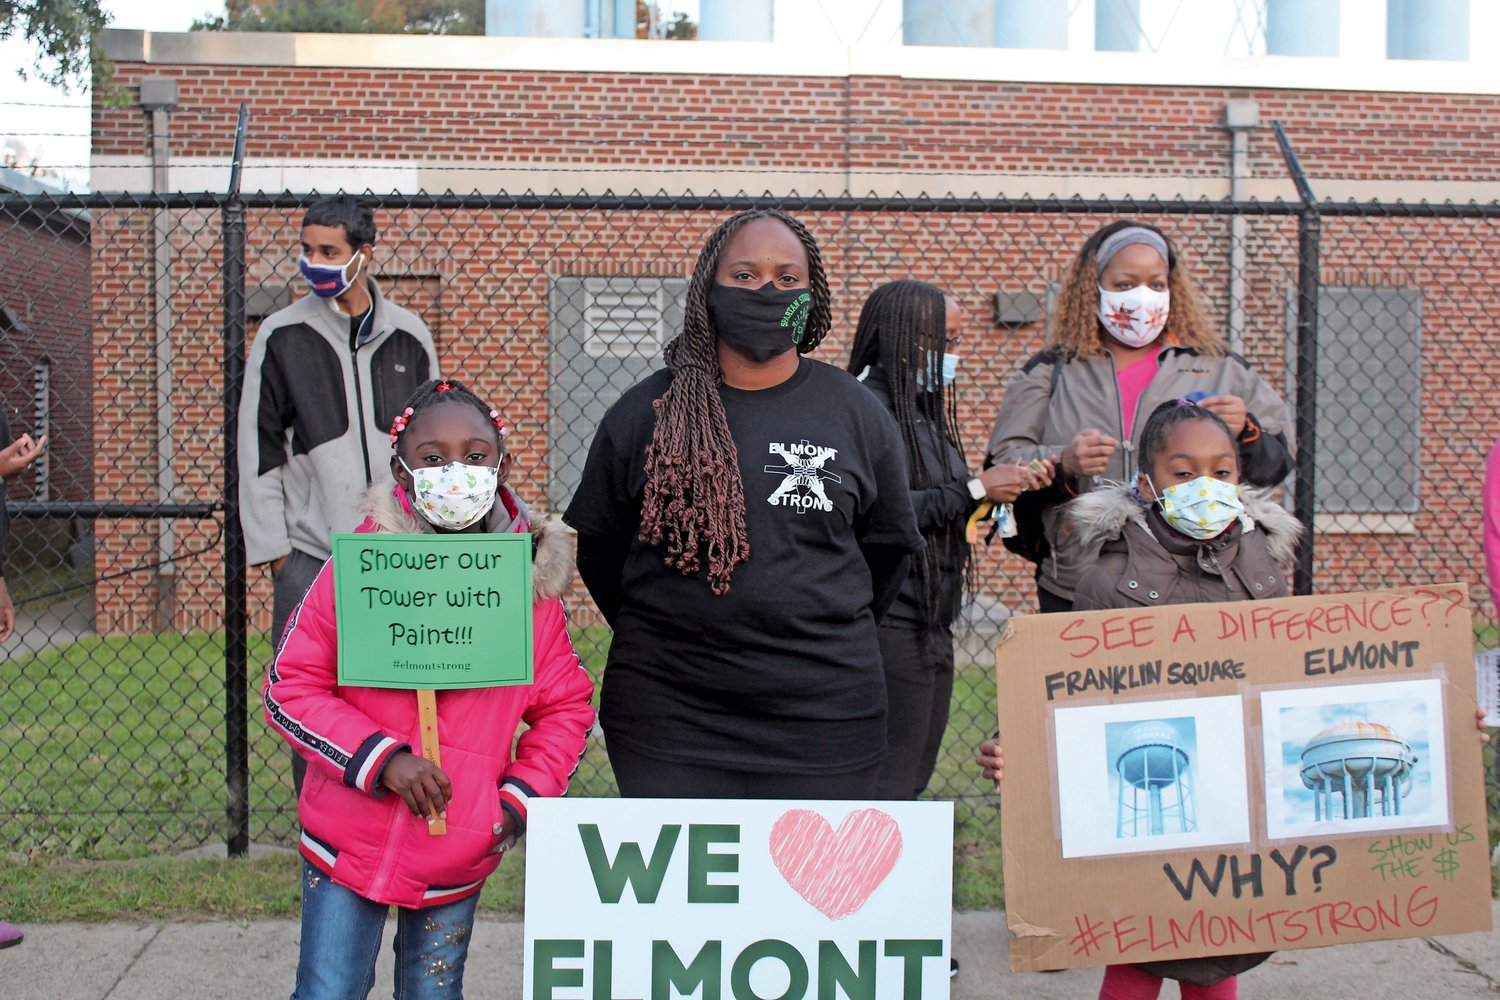 Victoria, Vernell and Desiree Nelson attended the water tower protest on Sept. 21.